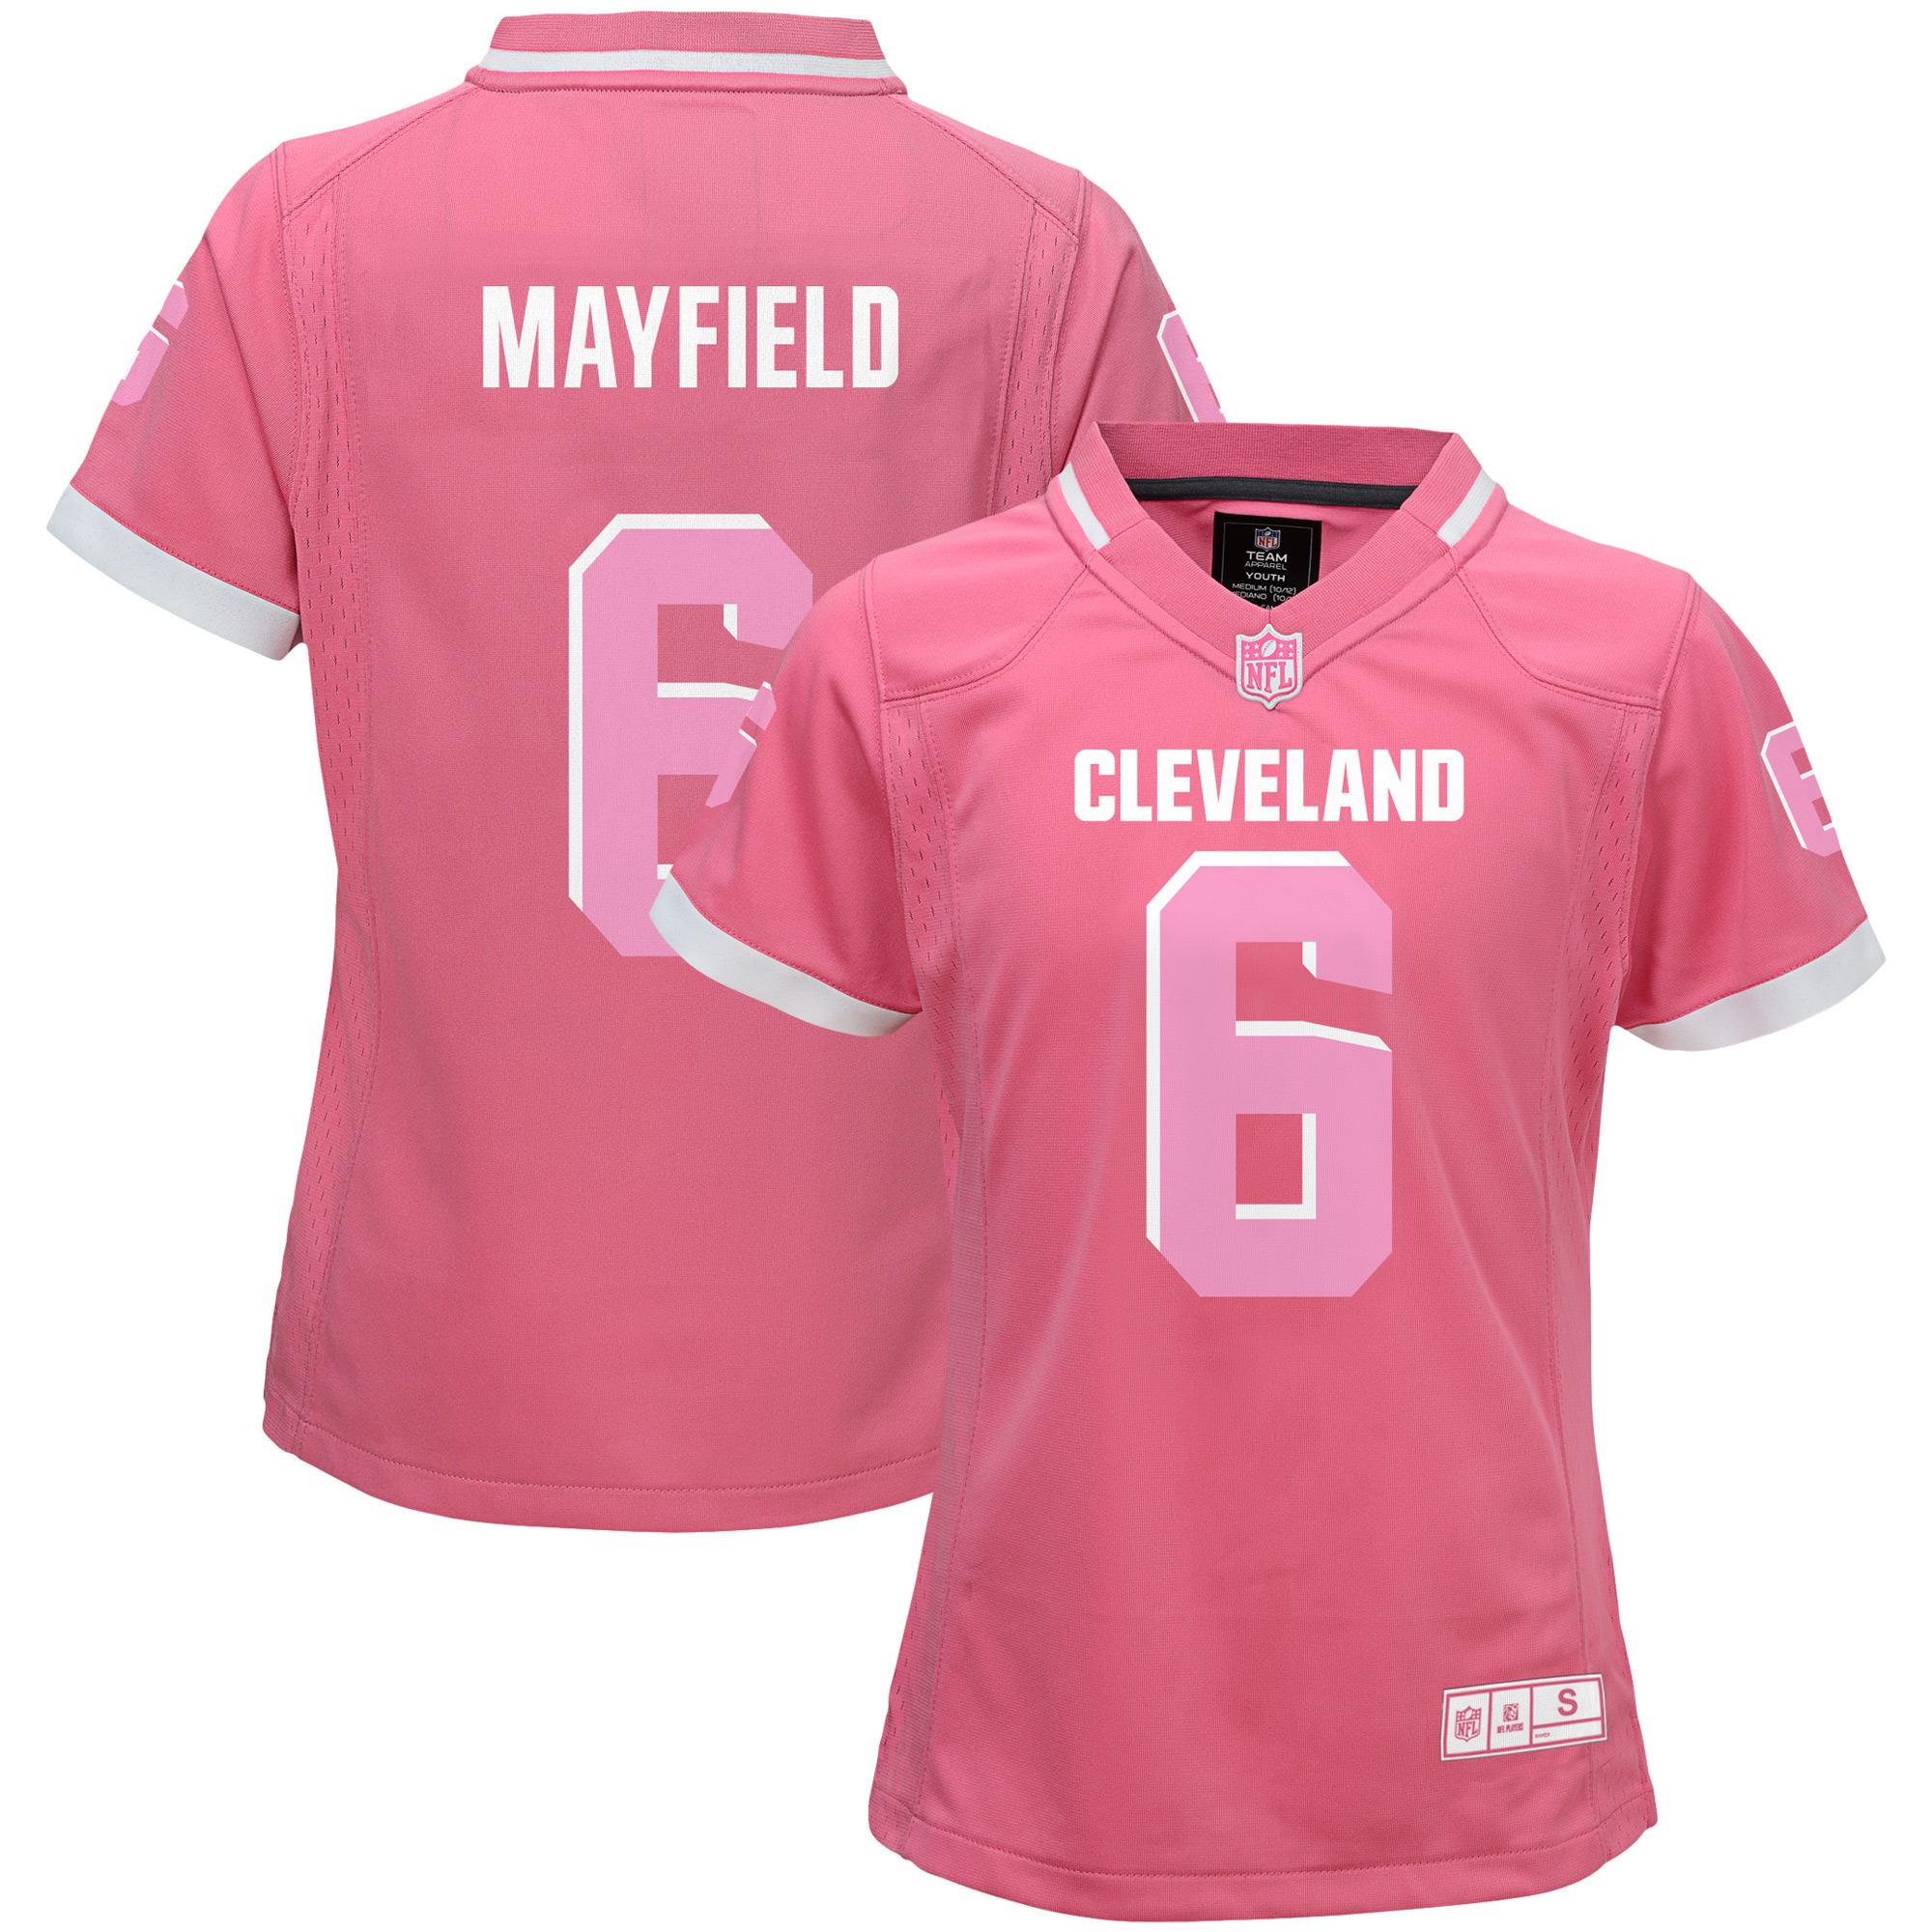 Baker Mayfield Cleveland Browns Girls Youth Bubble Gum Jersey - Pink